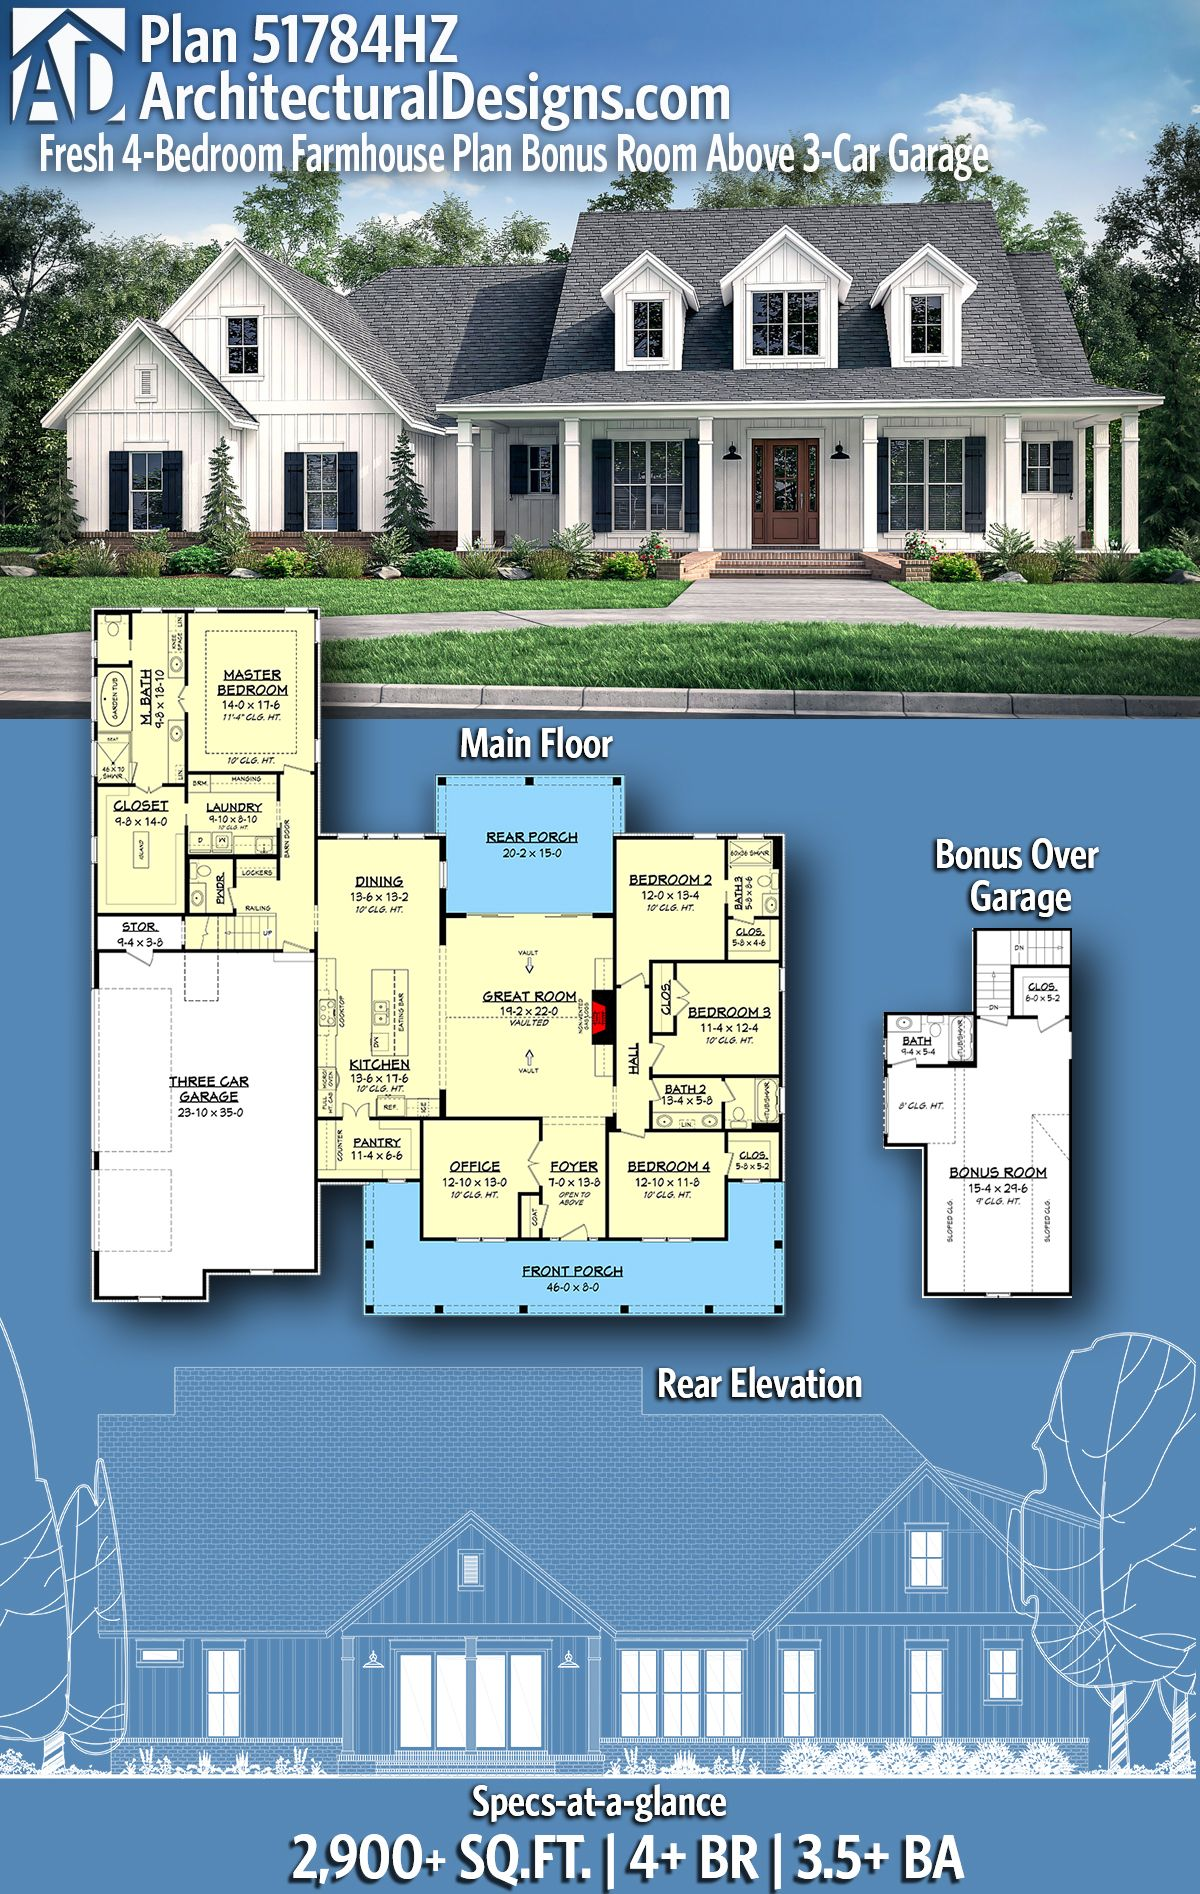 medium resolution of desertrose architectural designs farmhouse plan 51784hz gives you 4 beds 3 5 baths 2 900 sq ft of heated living space with a bonus room above